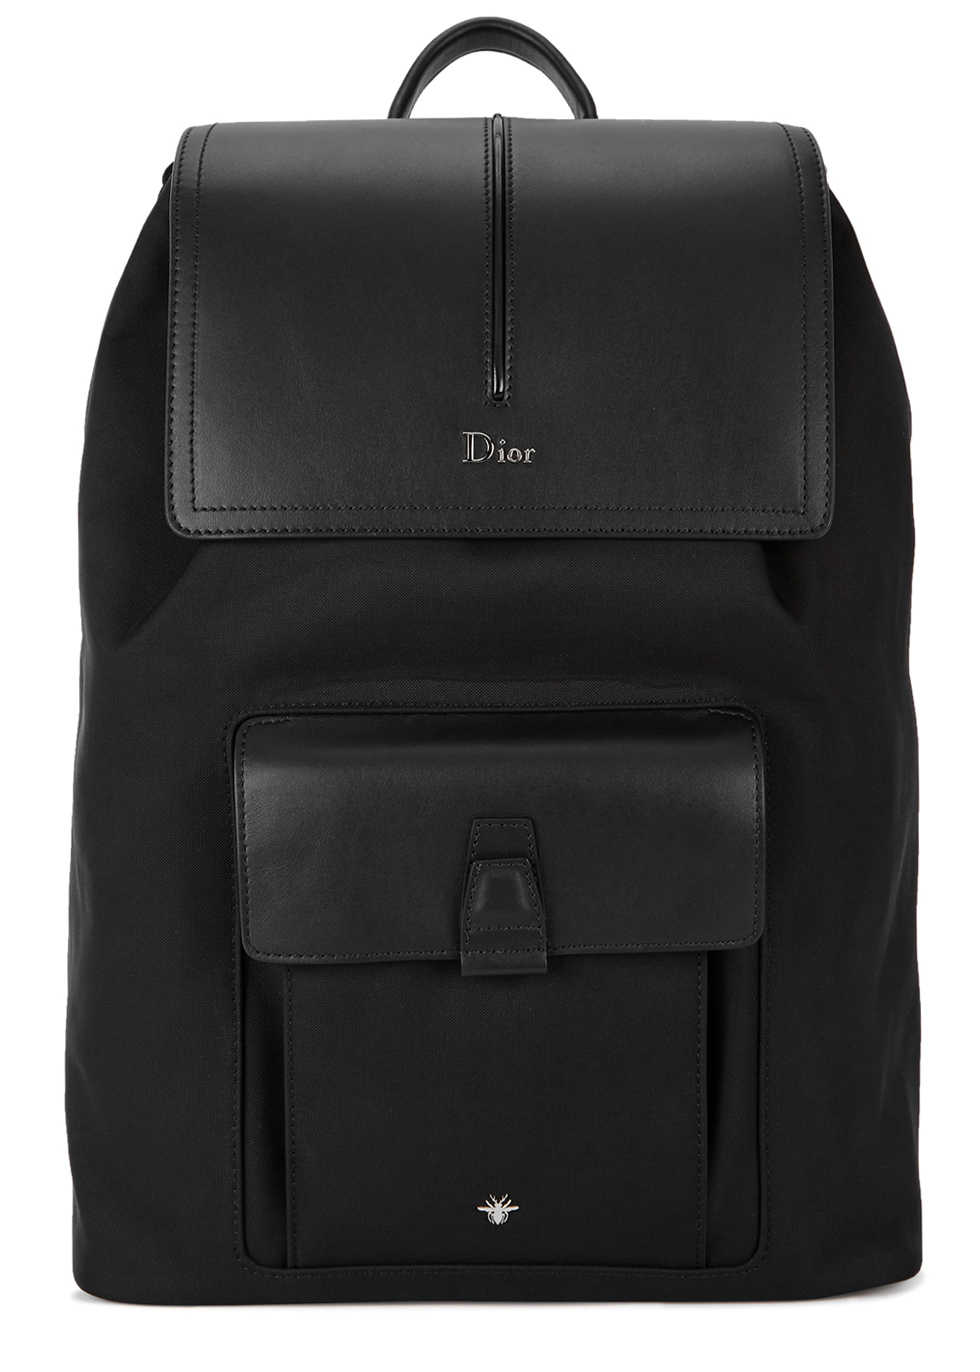 DIOR HOMME MOTION LEATHER-TRIMMED CANVAS BACKPACK